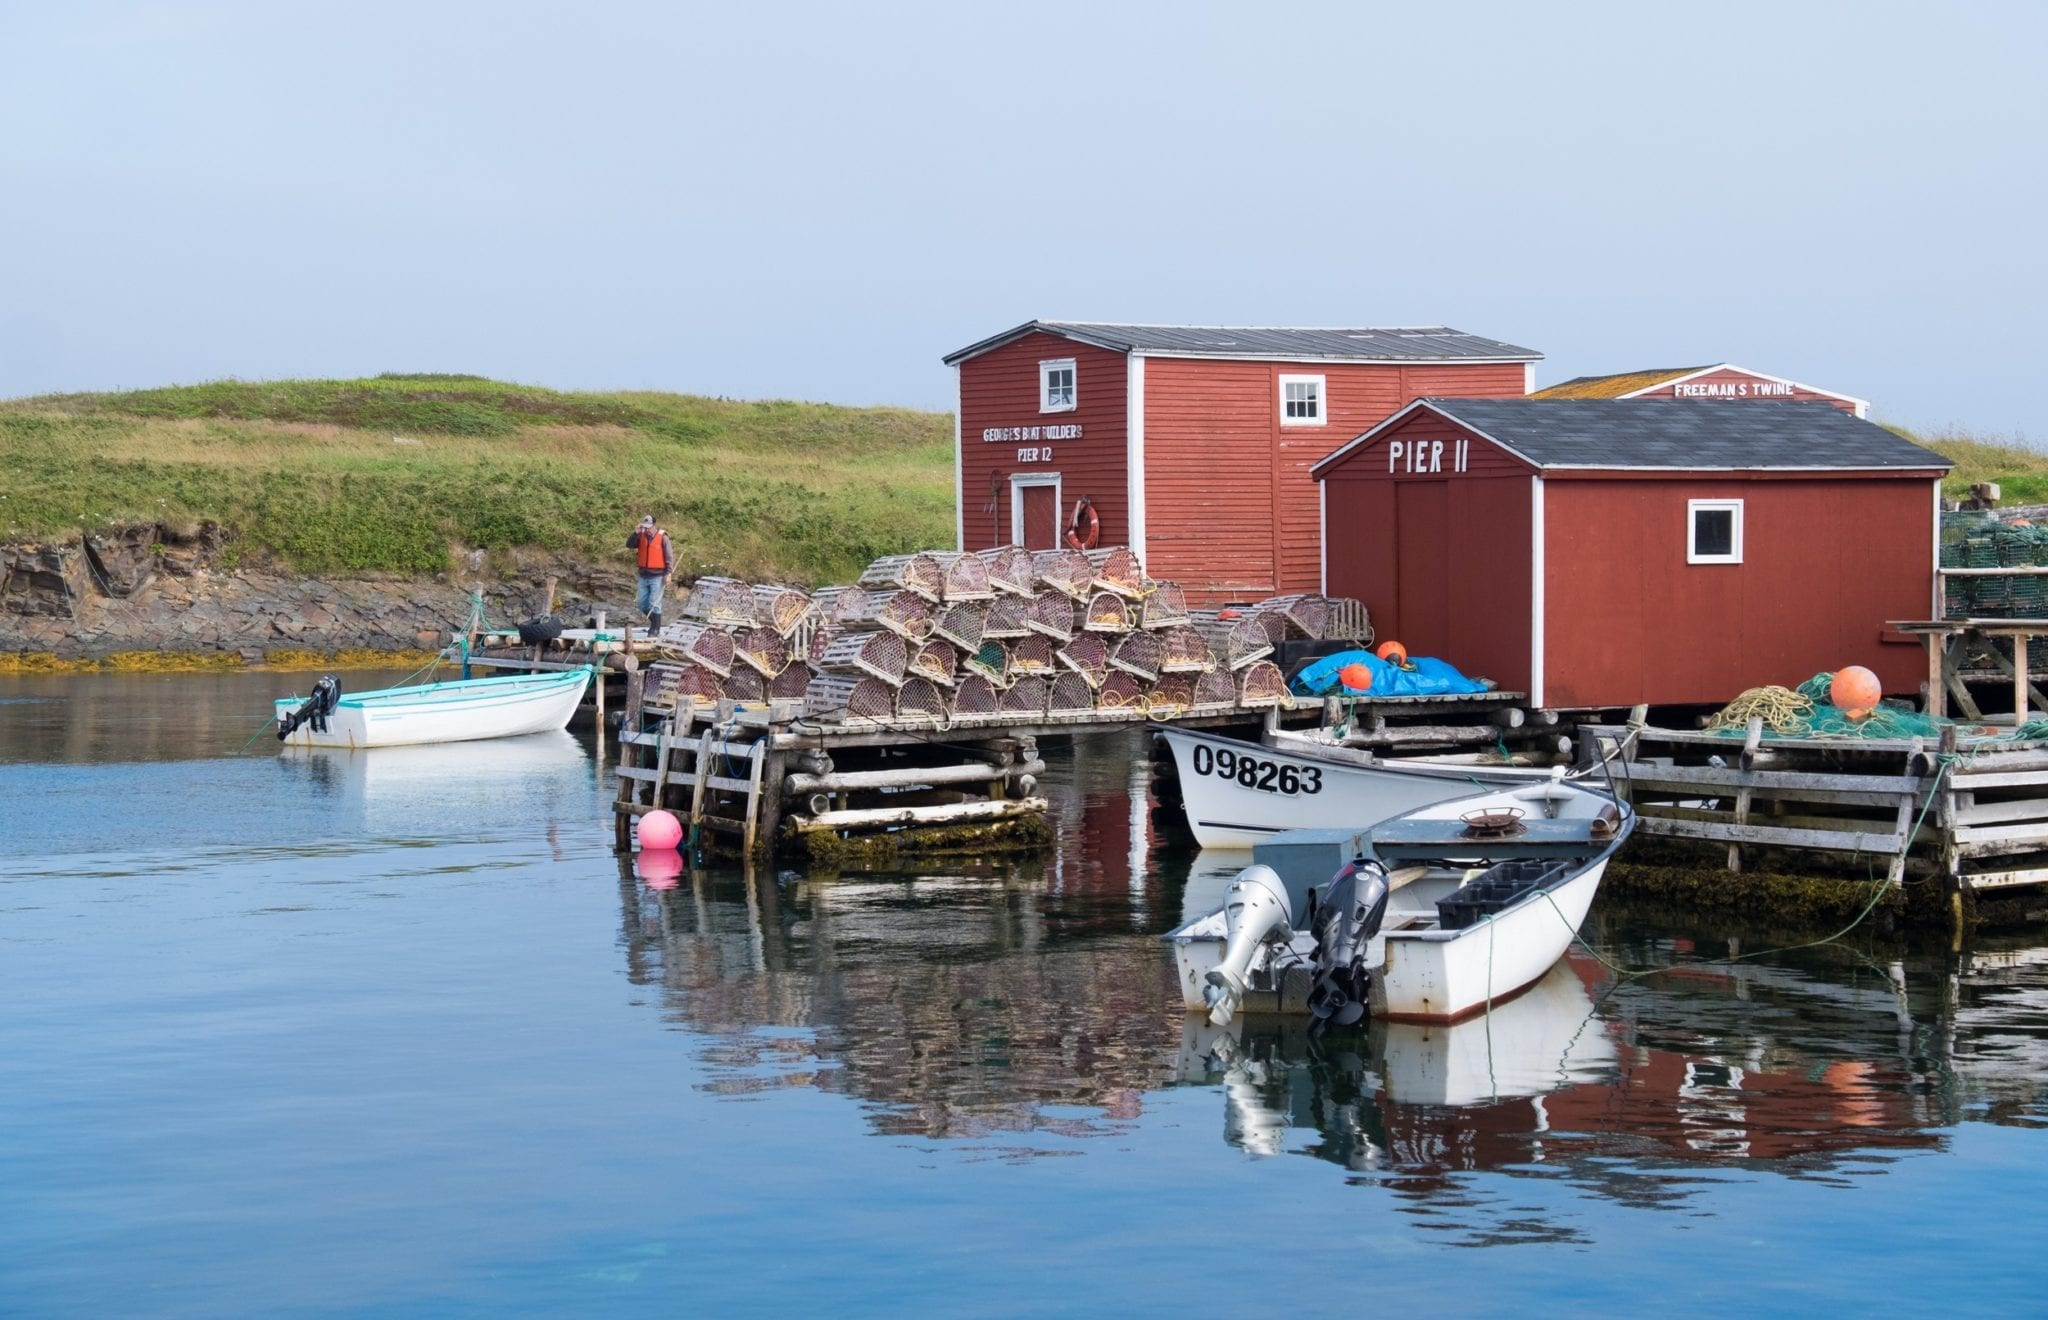 Red fishing cottages perched on the glassy blue bay next to lobster traps in Newfoundland.